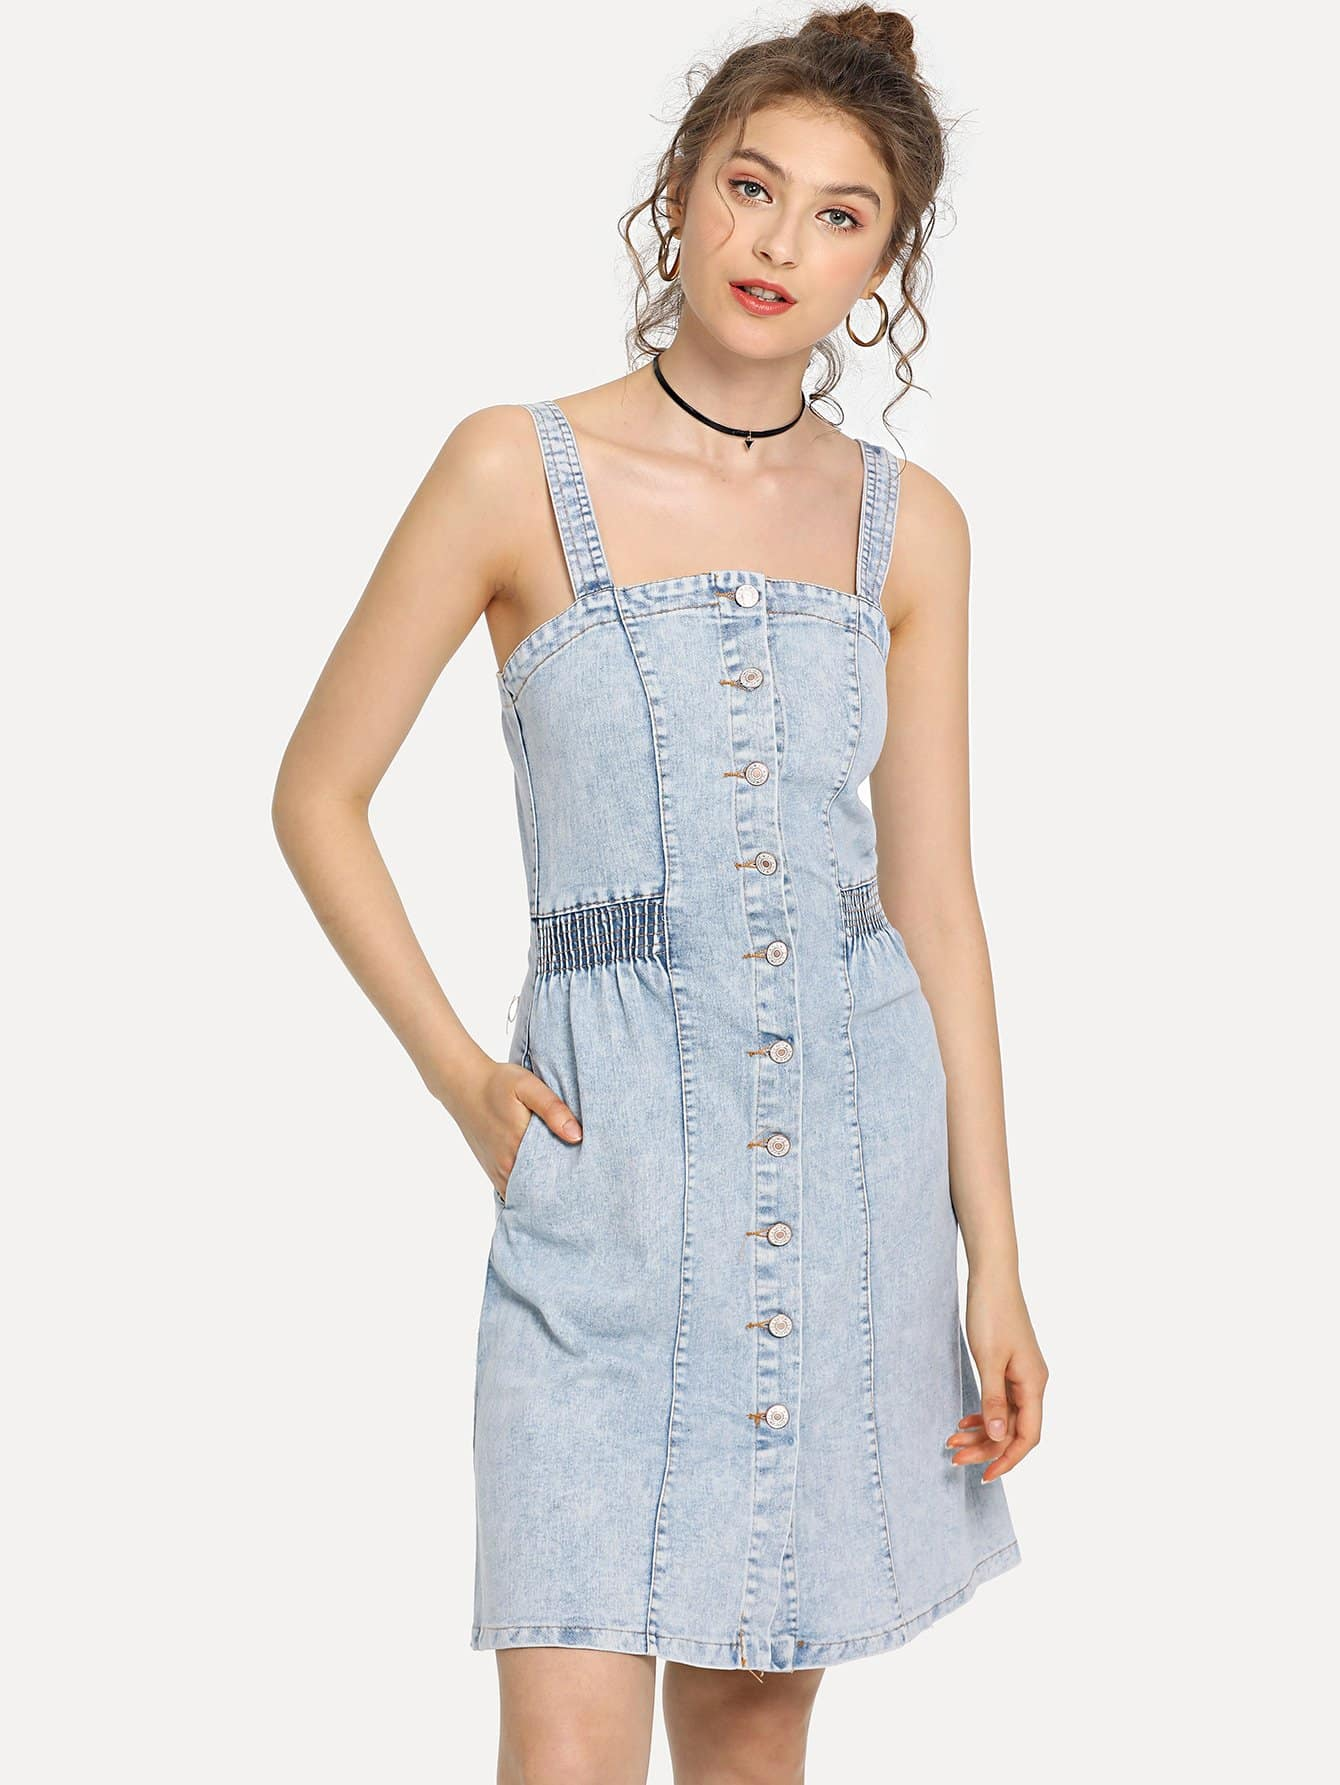 Elastic Waist Button Strappy Denim Dress бк 39 магнит поросенок